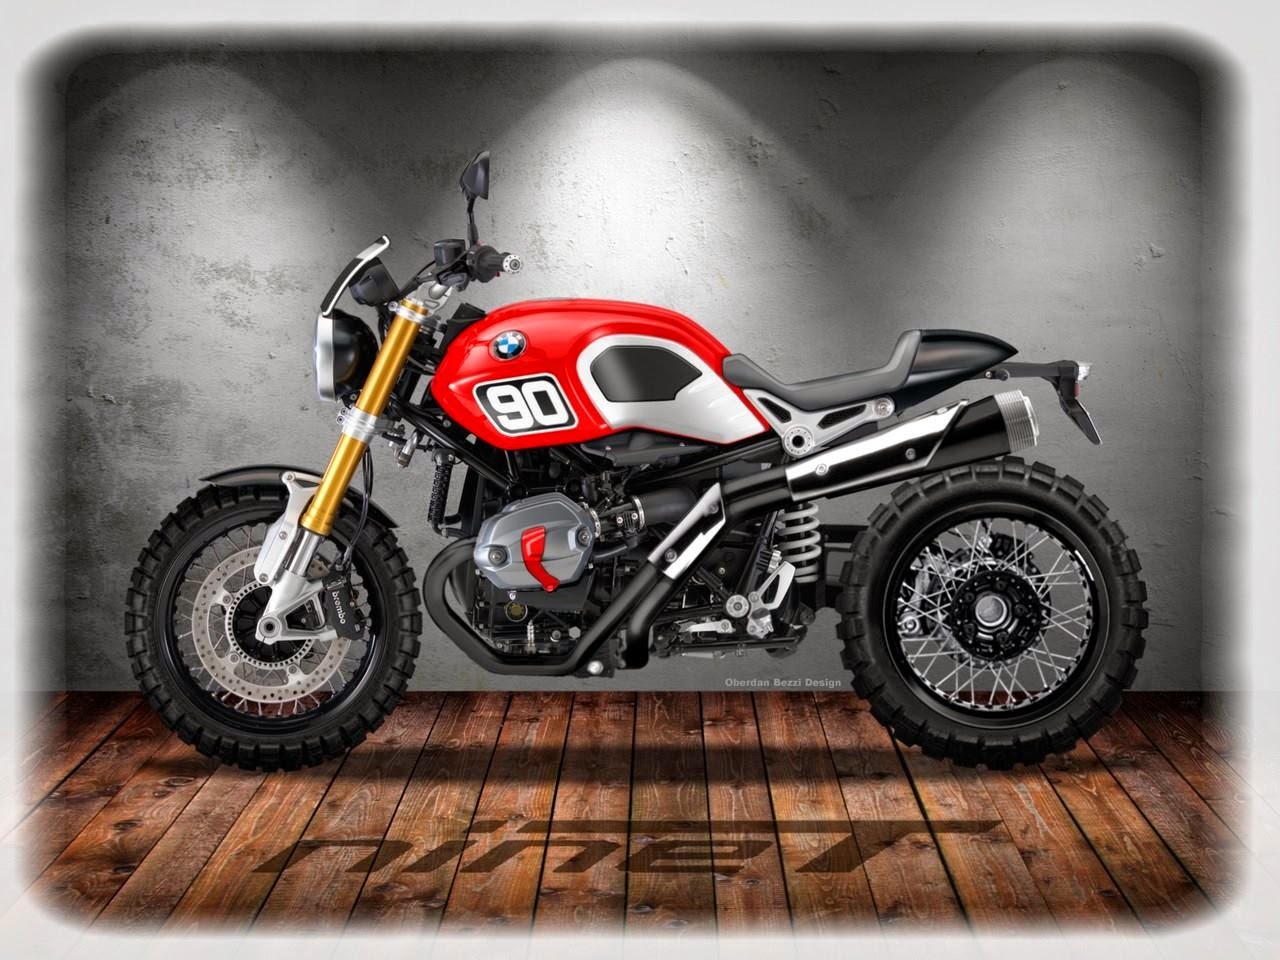 racing caf caf racer concepts bmw r ninet series 3 by oberdan bezzi. Black Bedroom Furniture Sets. Home Design Ideas